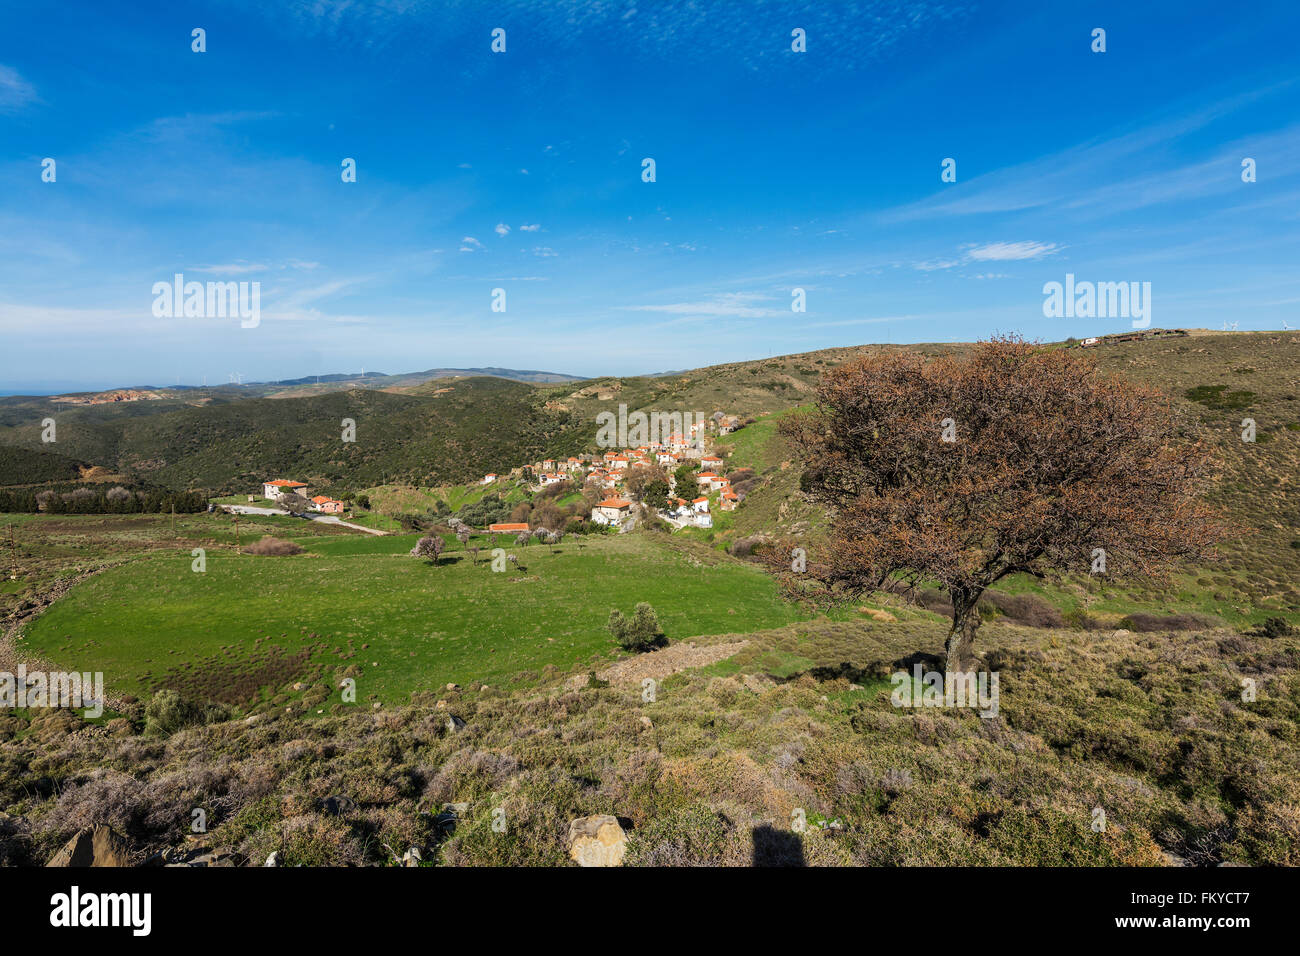 Landscape with small village - Stock Image